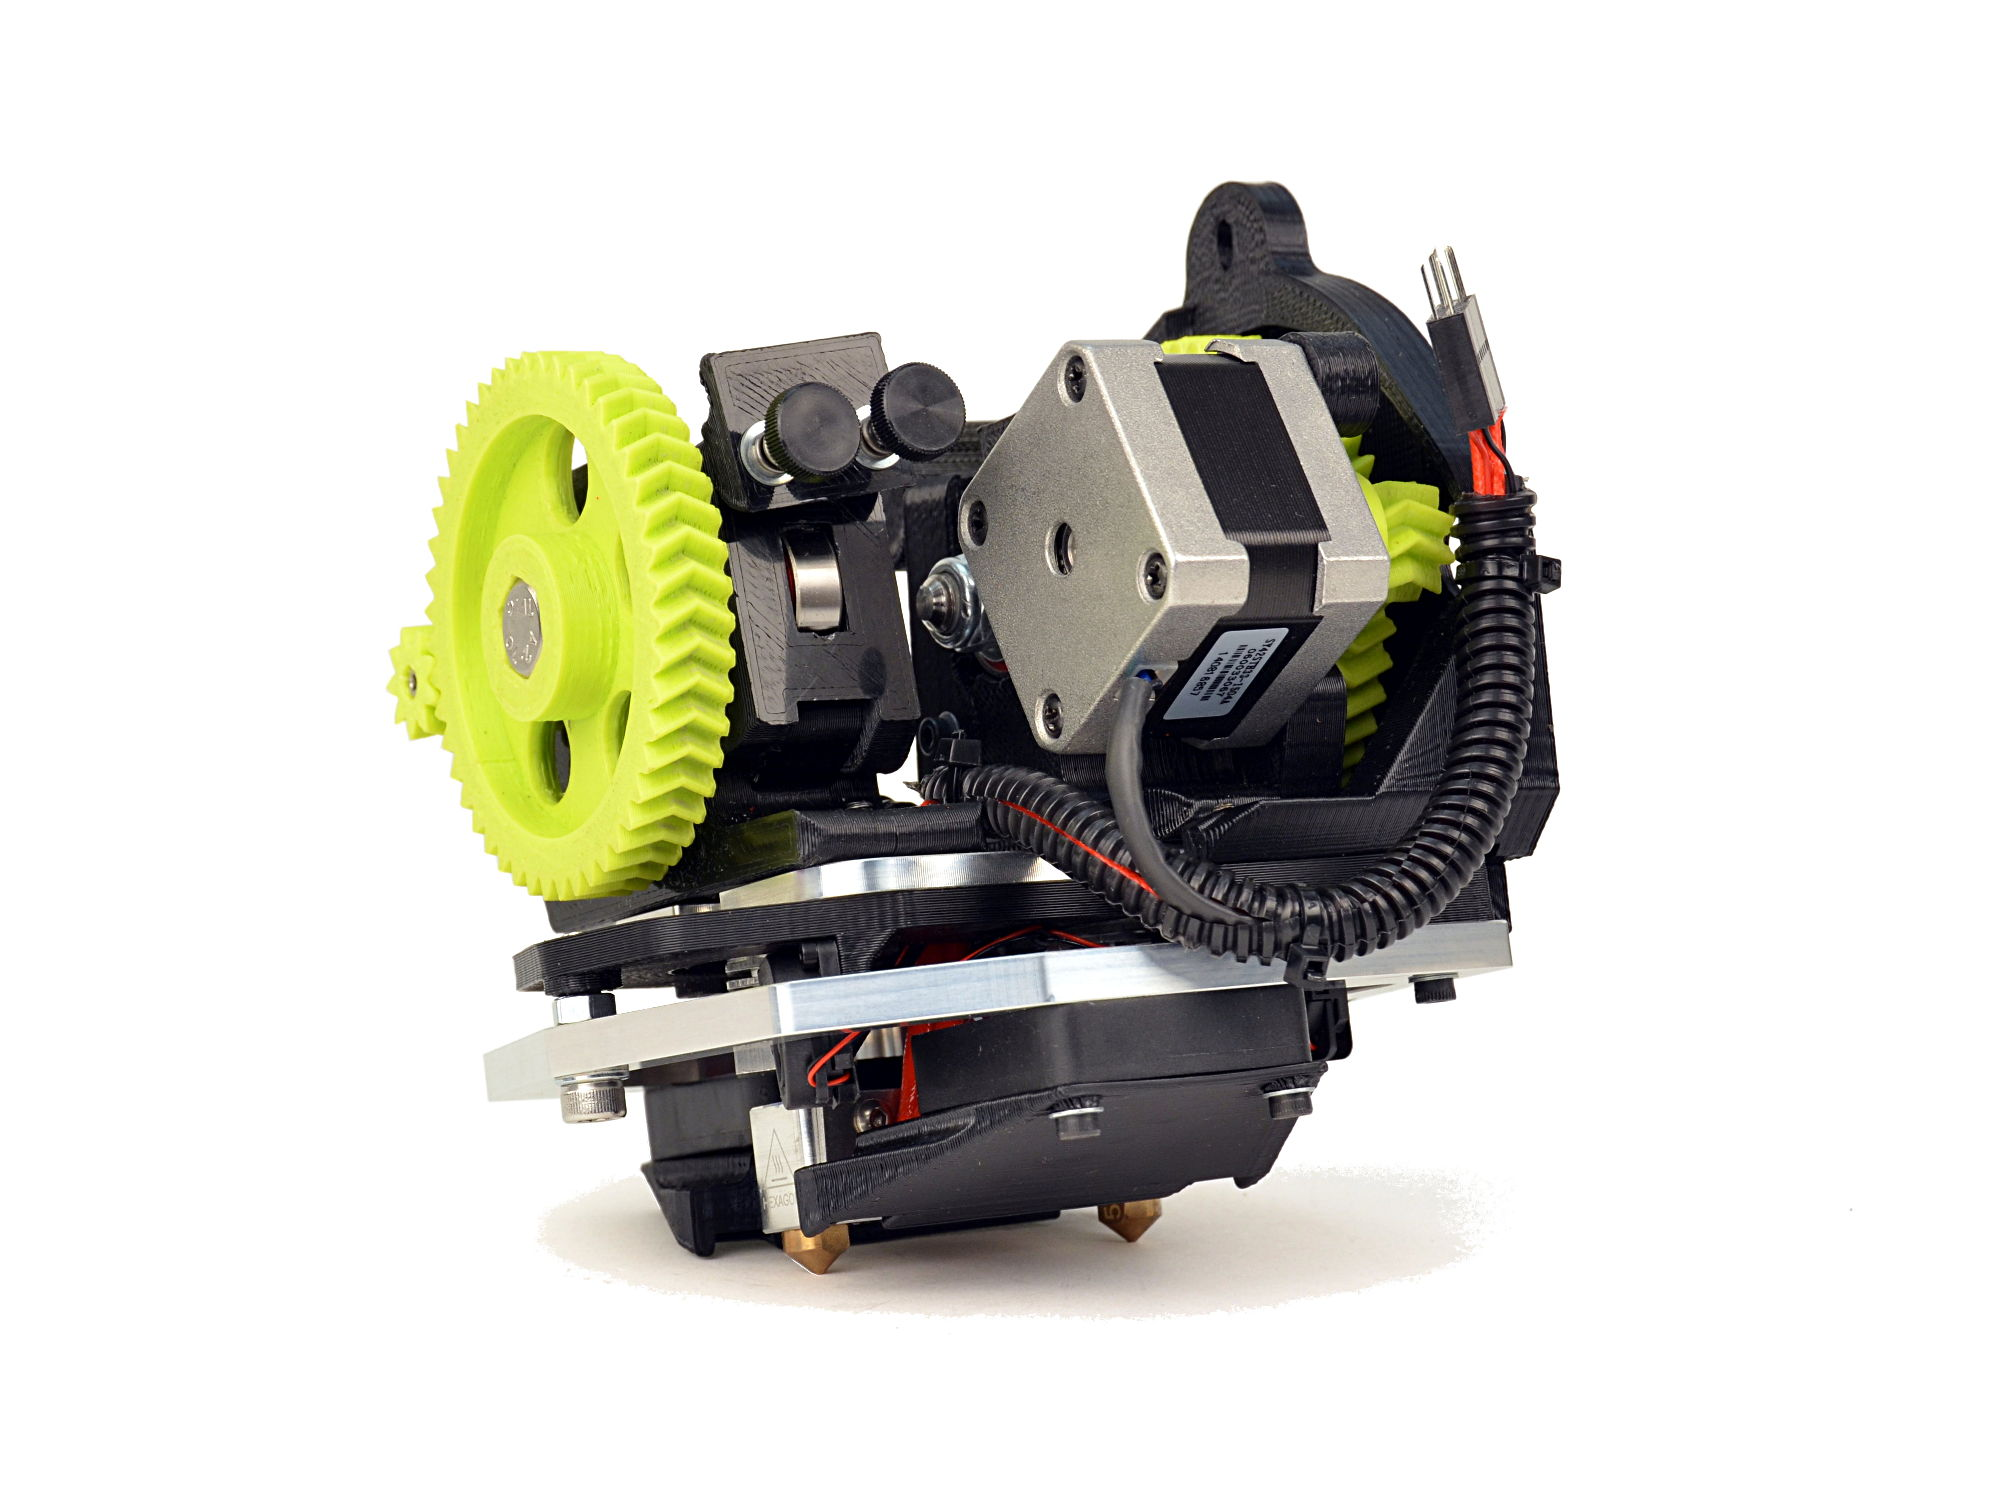 Aleph Objects Releases New LulzBot 3D Printer Hardware